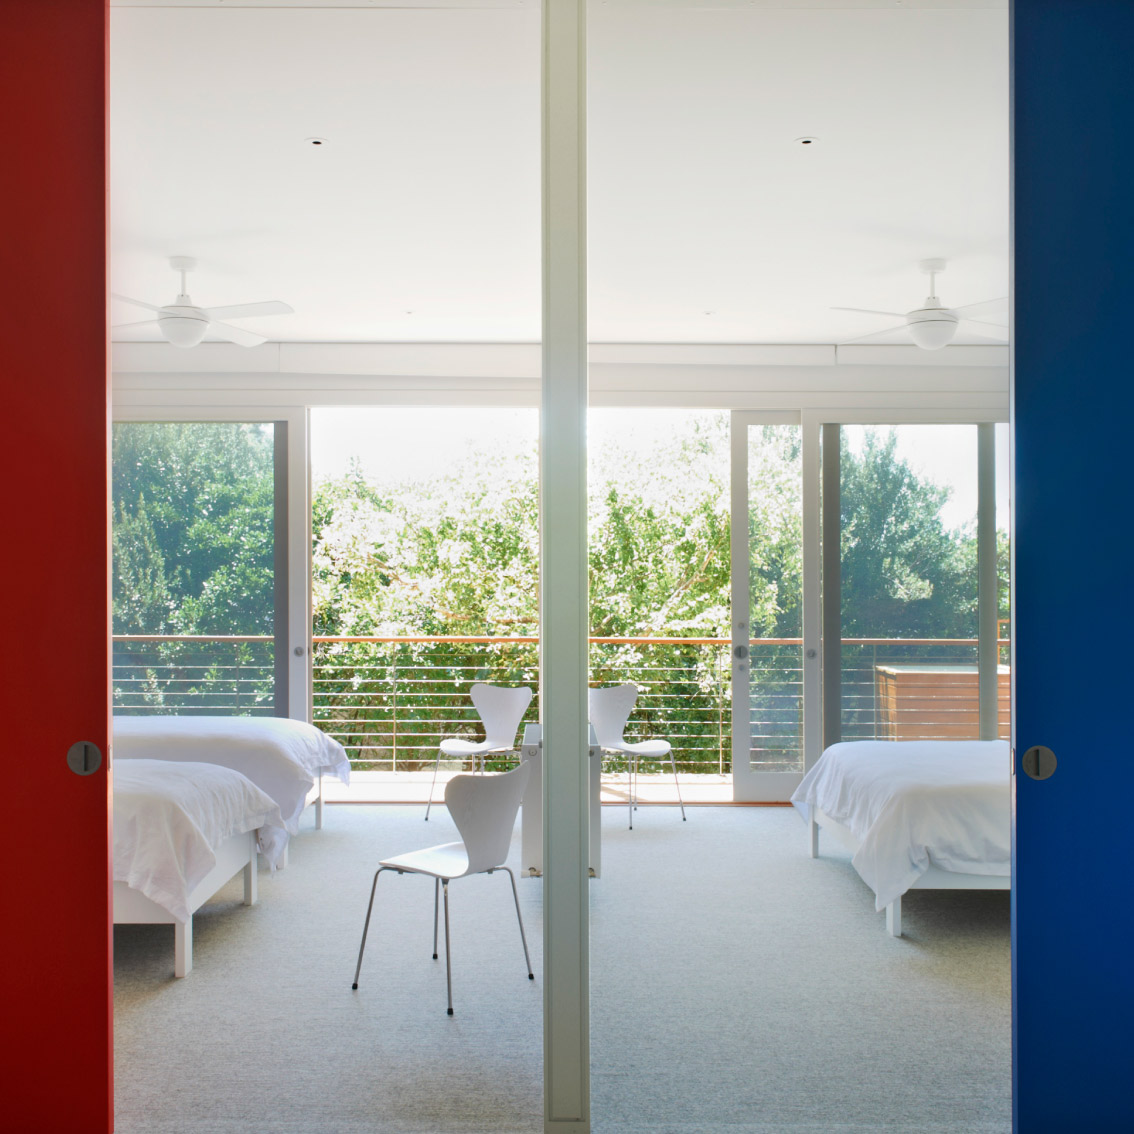 Nexusblog The Sunny Side Of The Dulux Colour Awards 2012 Nexus Designs Shortlisted